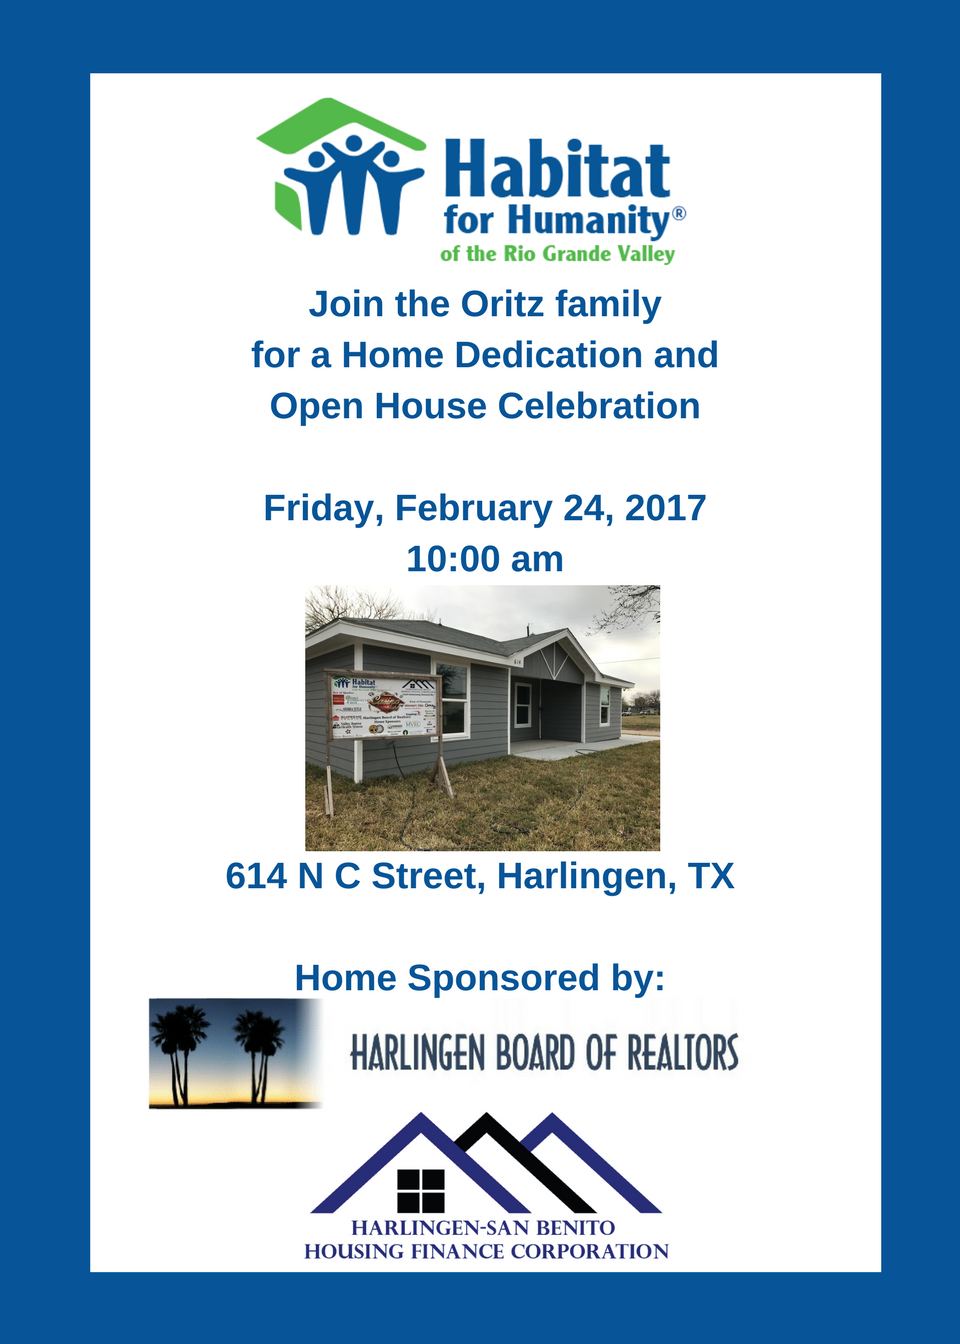 habitat for humanity home application